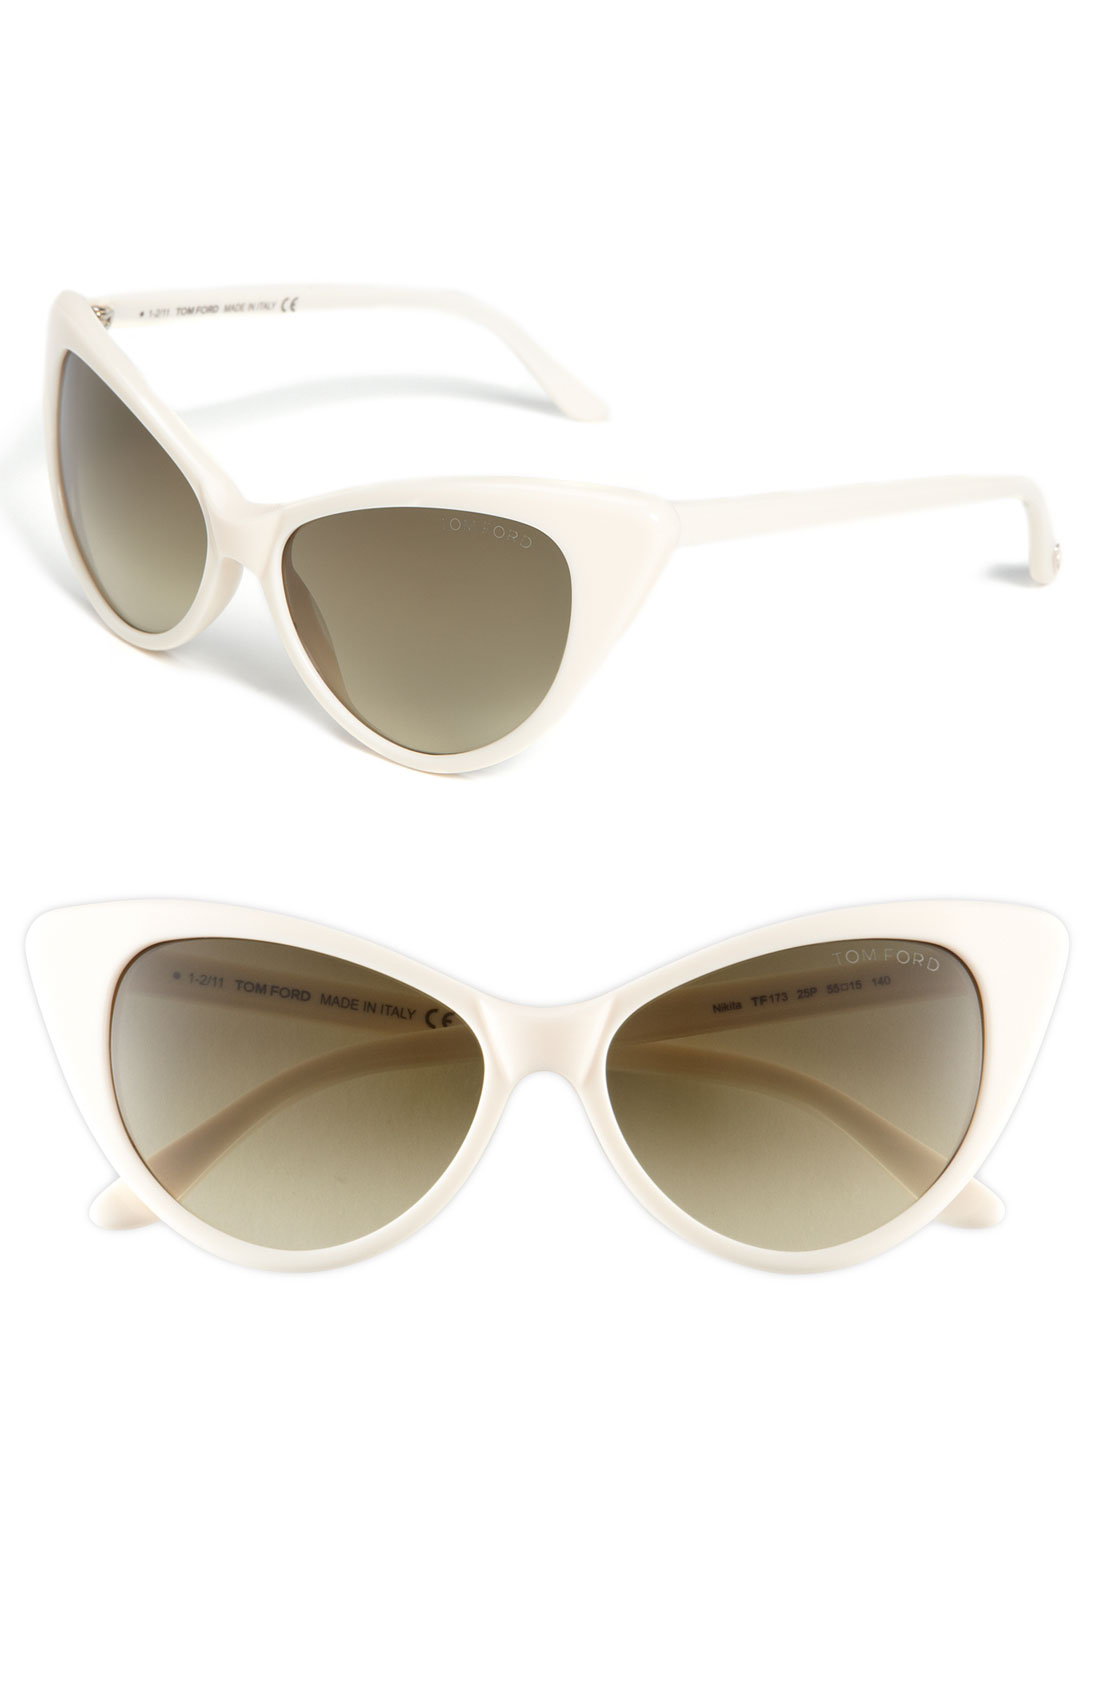 tom ford plastic cats eye sunglasses in white shiny ivory gradient. Cars Review. Best American Auto & Cars Review